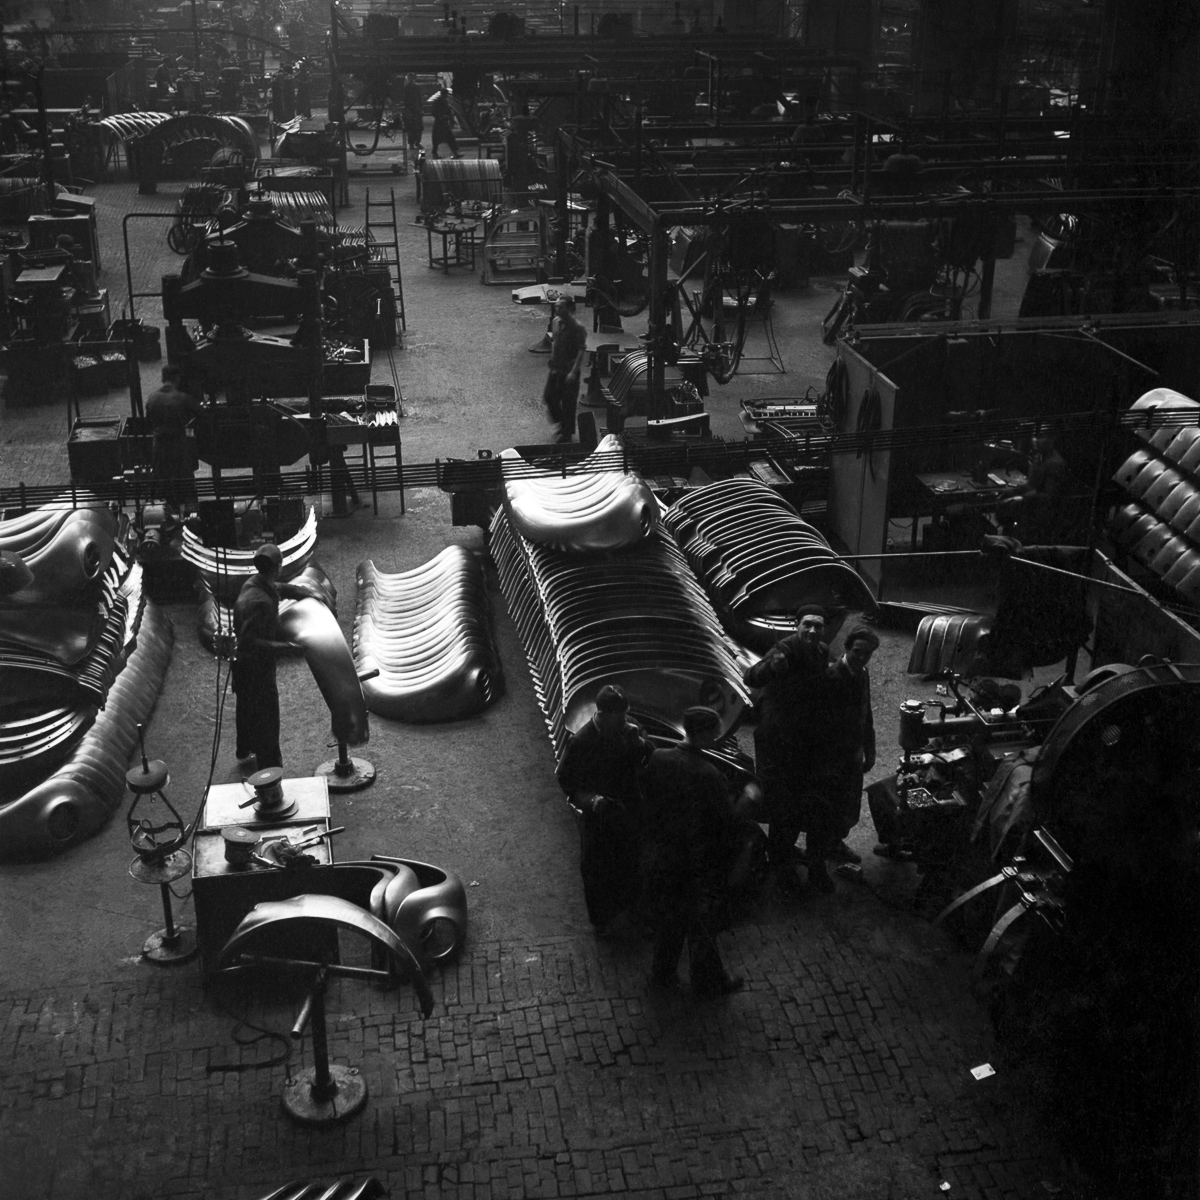 15 Dec 1952 --- General views of the production line at the volkswagen factory producing Beetle cars in Germany. December 1952 C6101-004 --- Image by © WATFORD/Mirrorpix/Corbis